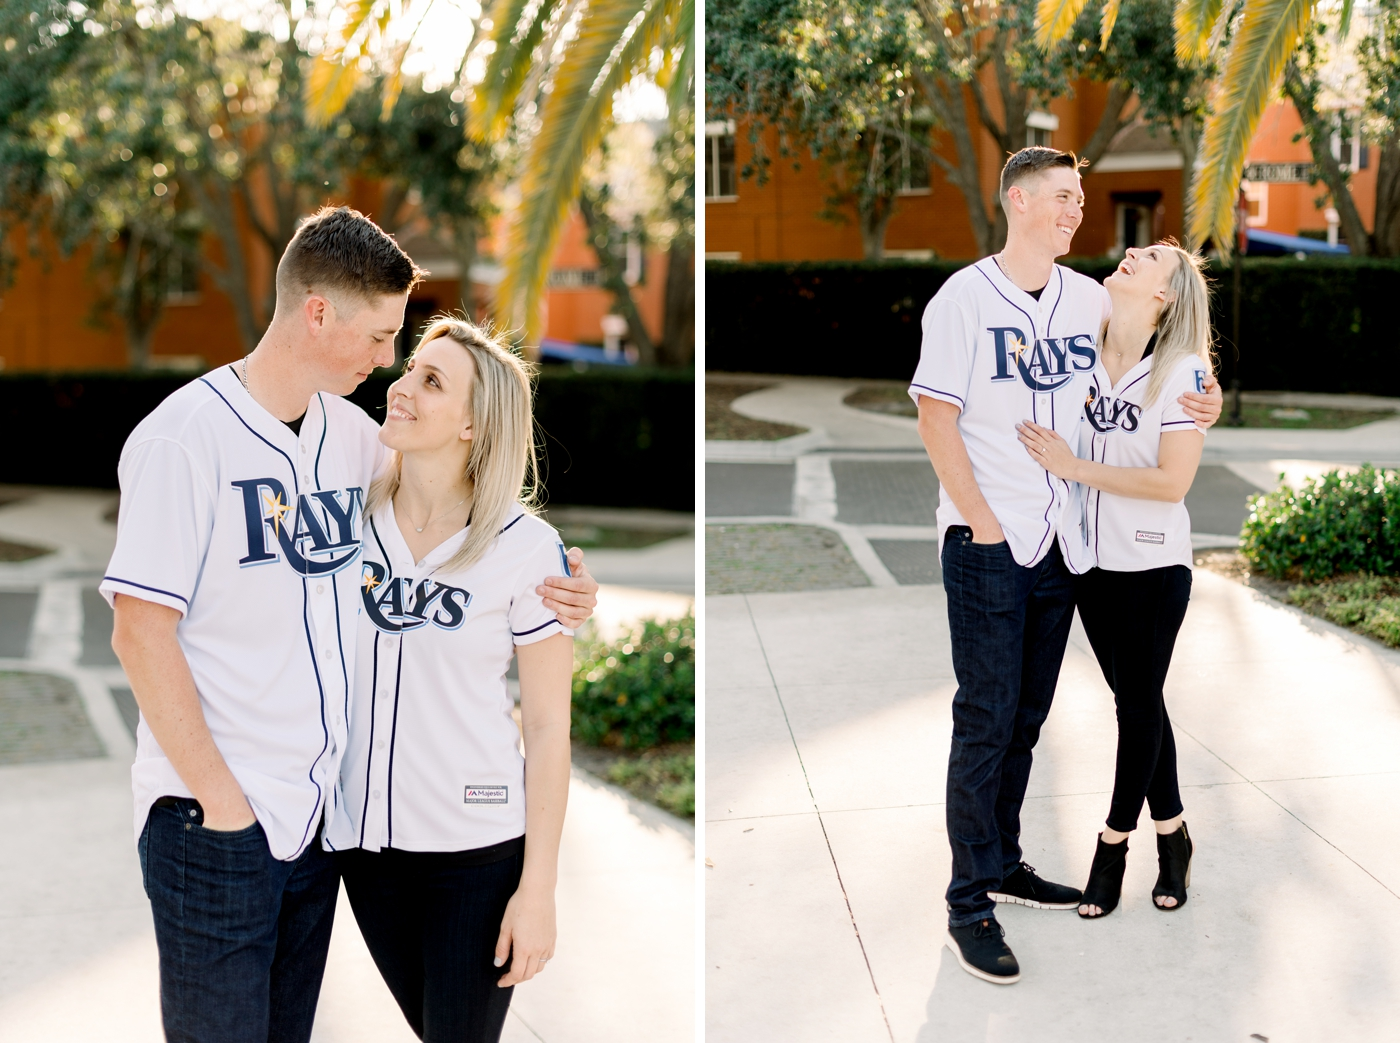 tampa bay rays photoshoot